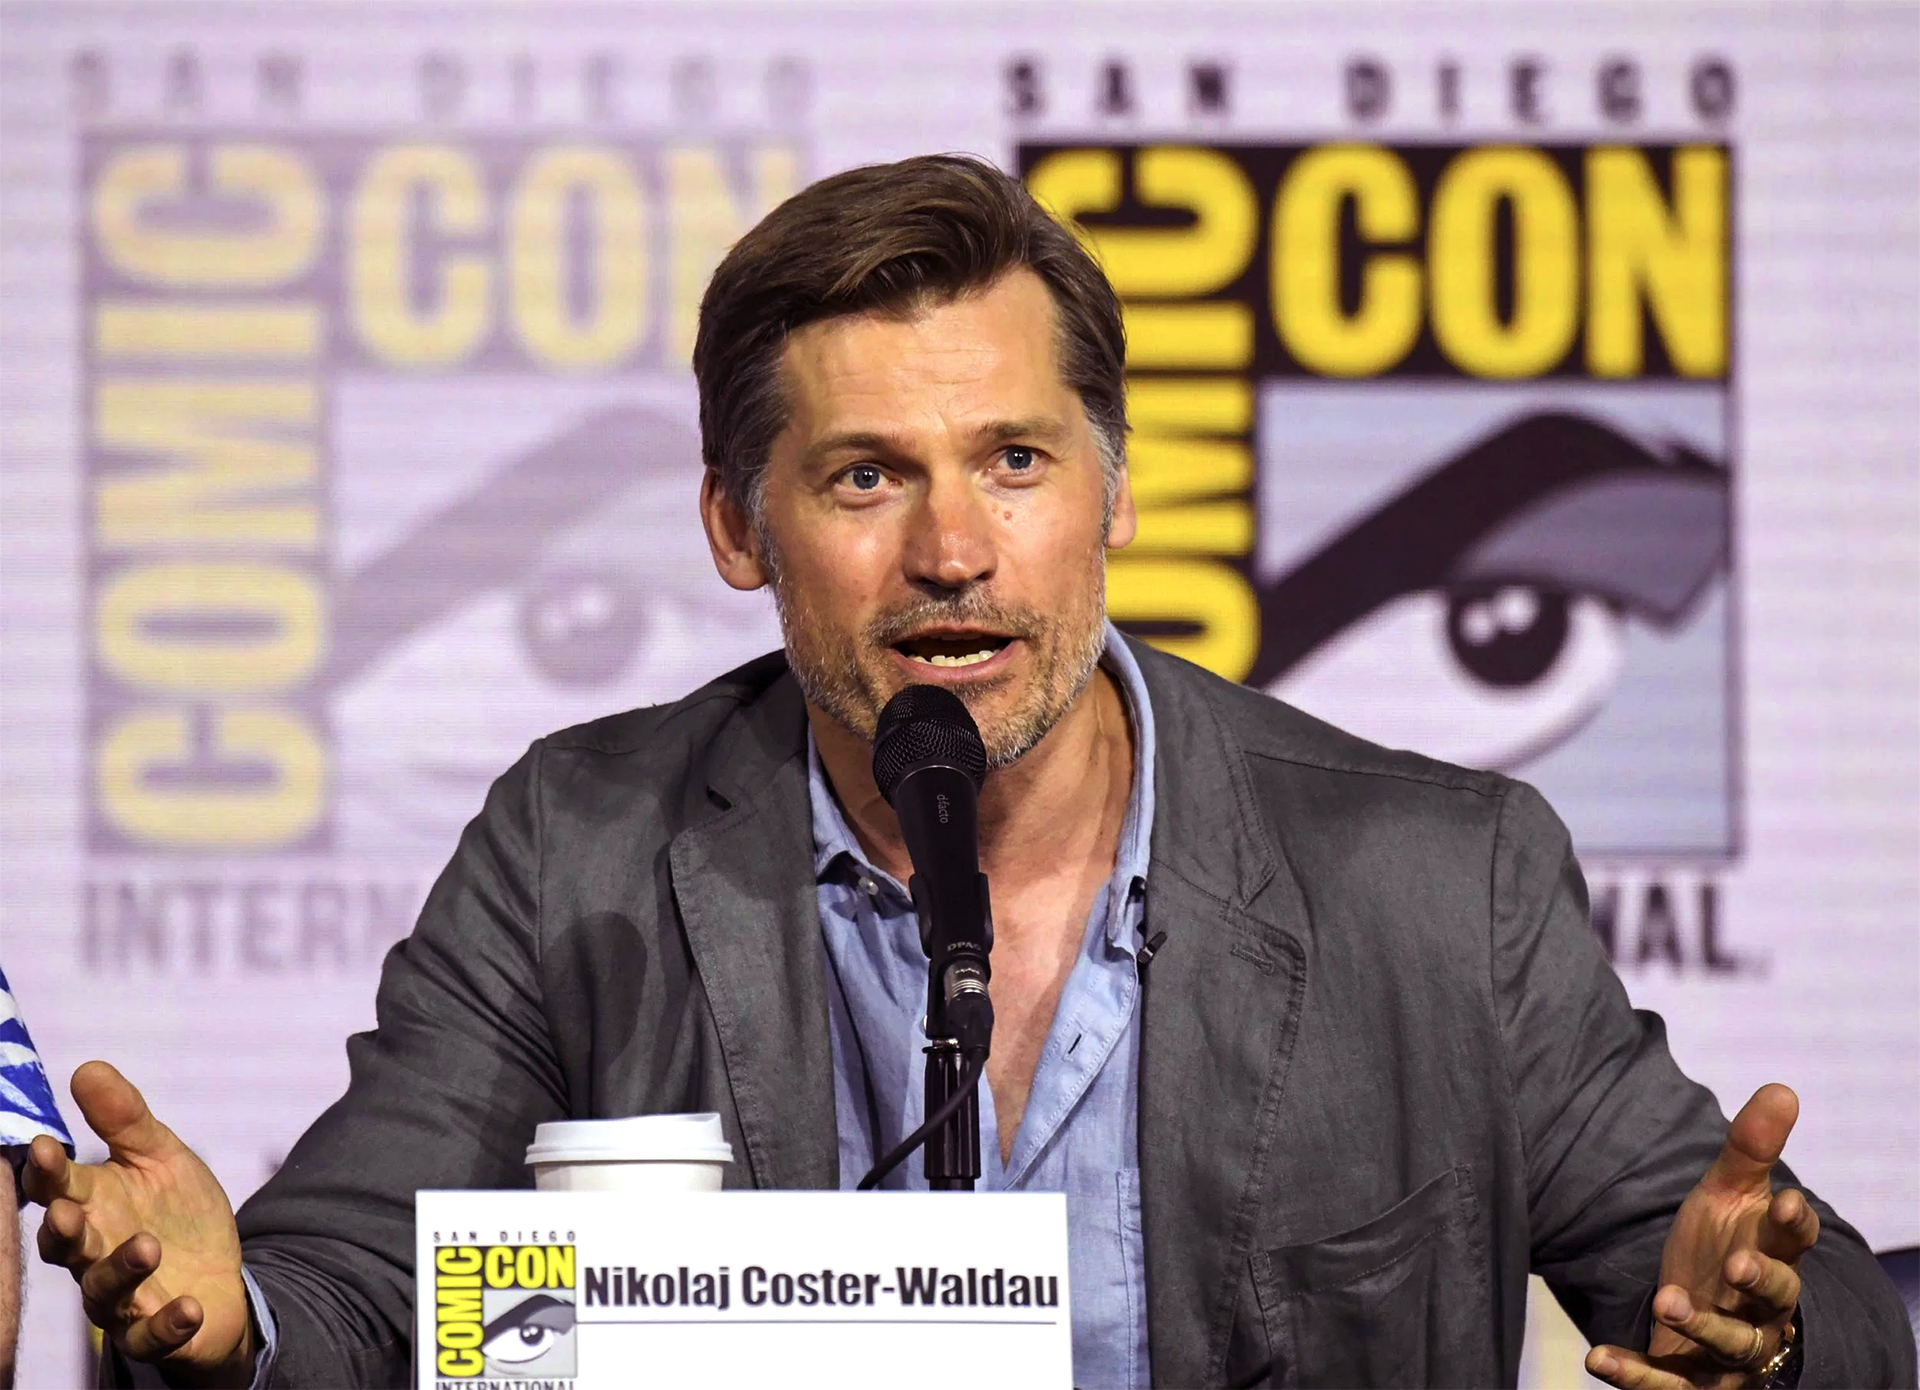 The 'Game of Thrones' Star Nikolaj Coster-Waldau Alerts Fans to Scam Ads Using His Likeness